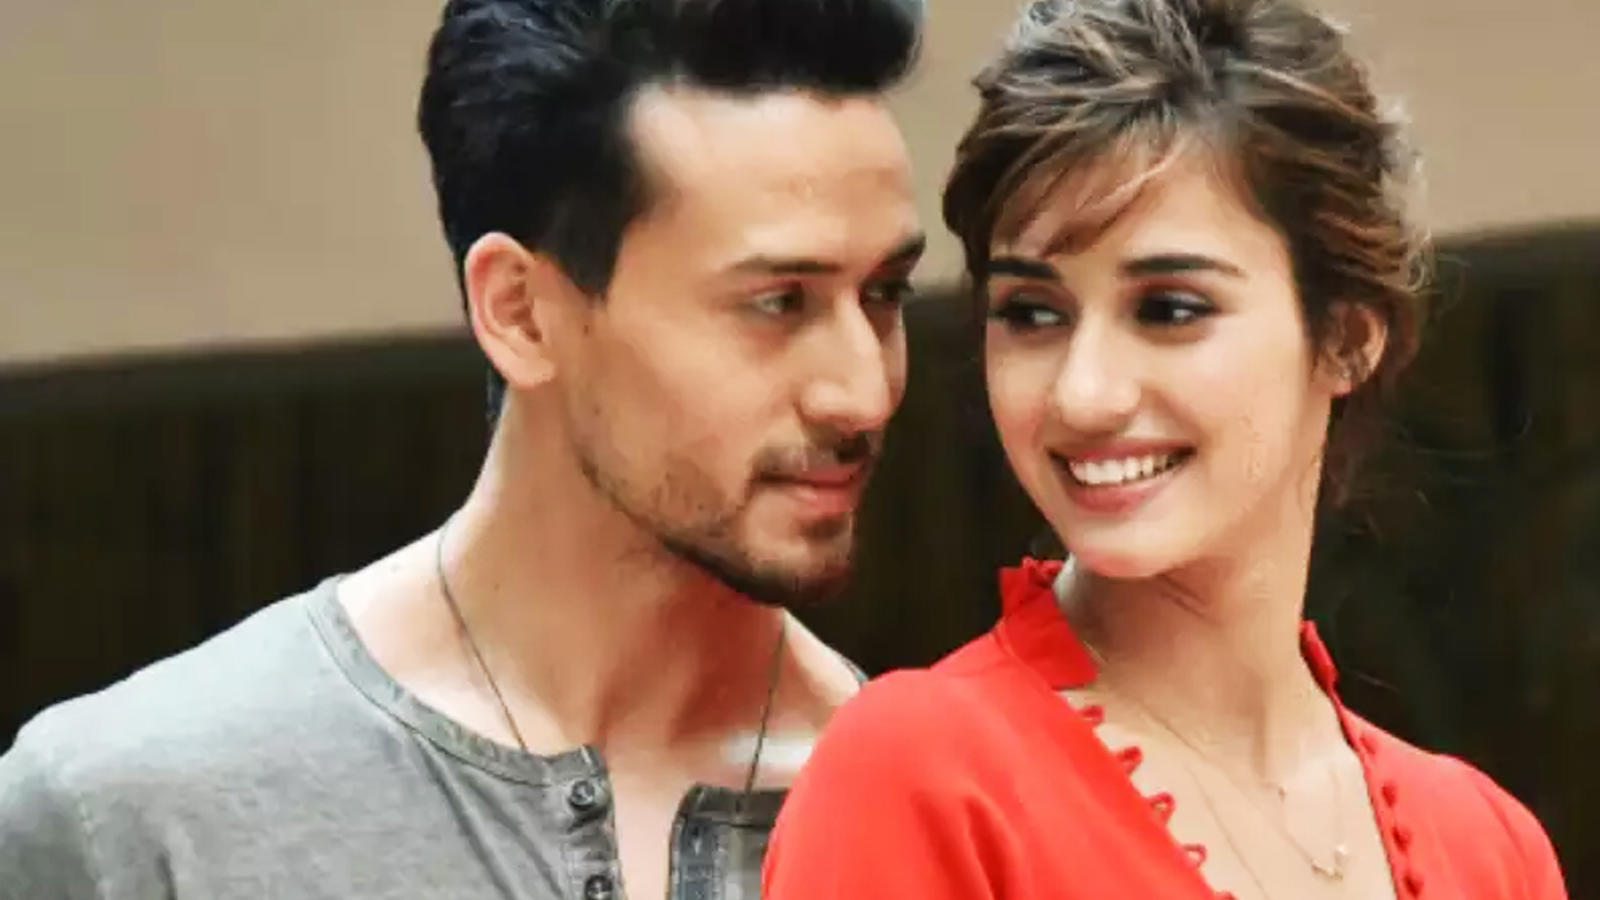 when-disha-patani-called-tiger-shroff-too-slow-and-said-she-wants-to-be-more-than-just-friends-with-the-actor